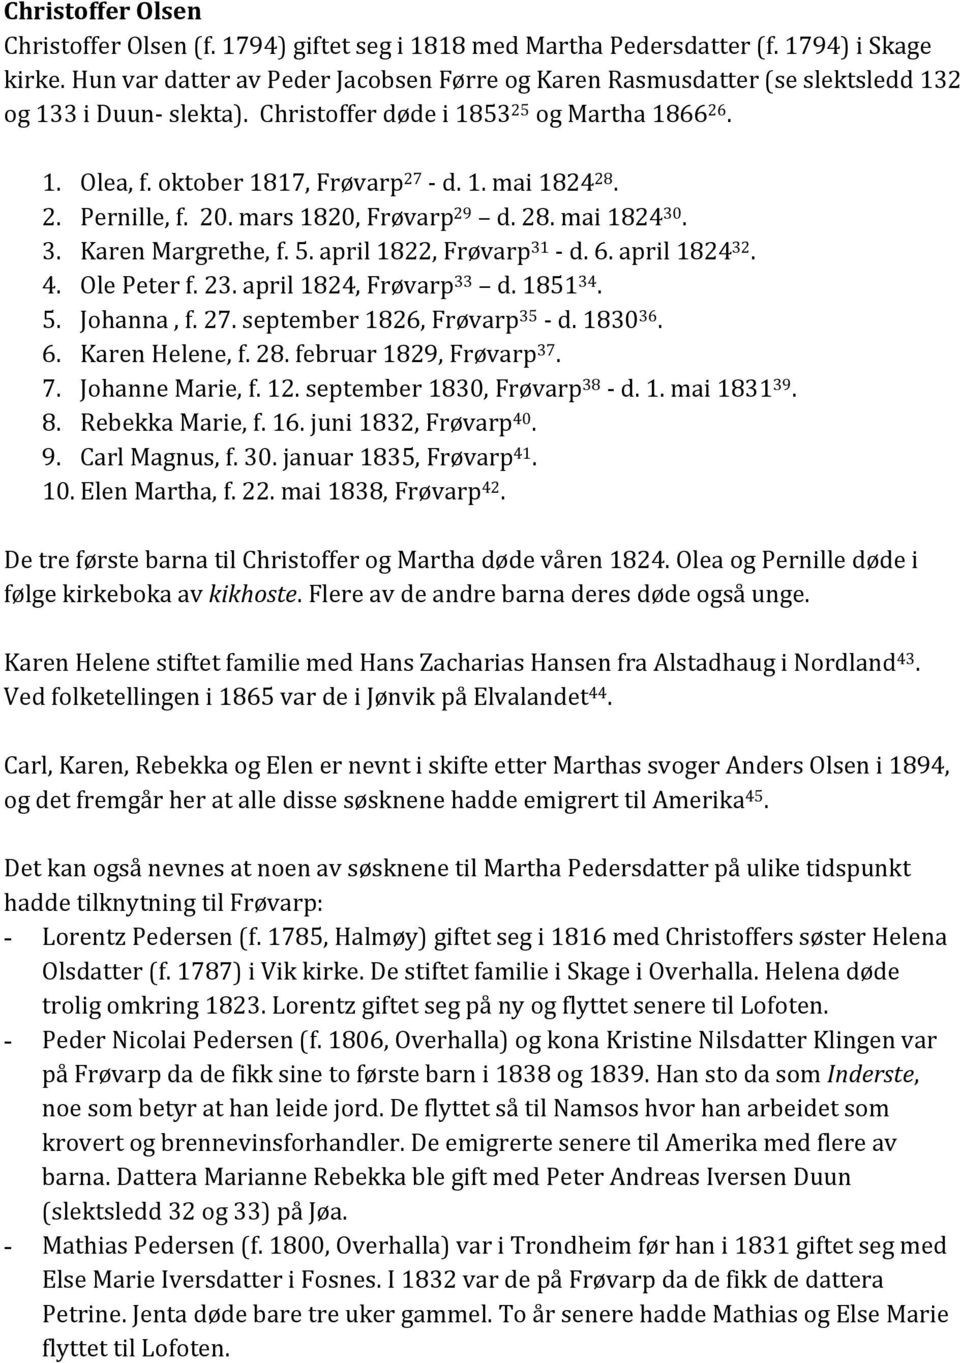 2. Pernille, f. 20. mars 1820, Frøvarp 29 d. 28. mai 1824 30. 3. Karen Margrethe, f. 5. april 1822, Frøvarp 31 - d. 6. april 1824 32. 4. Ole Peter f. 23. april 1824, Frøvarp 33 d. 1851 34. 5. Johanna, f.